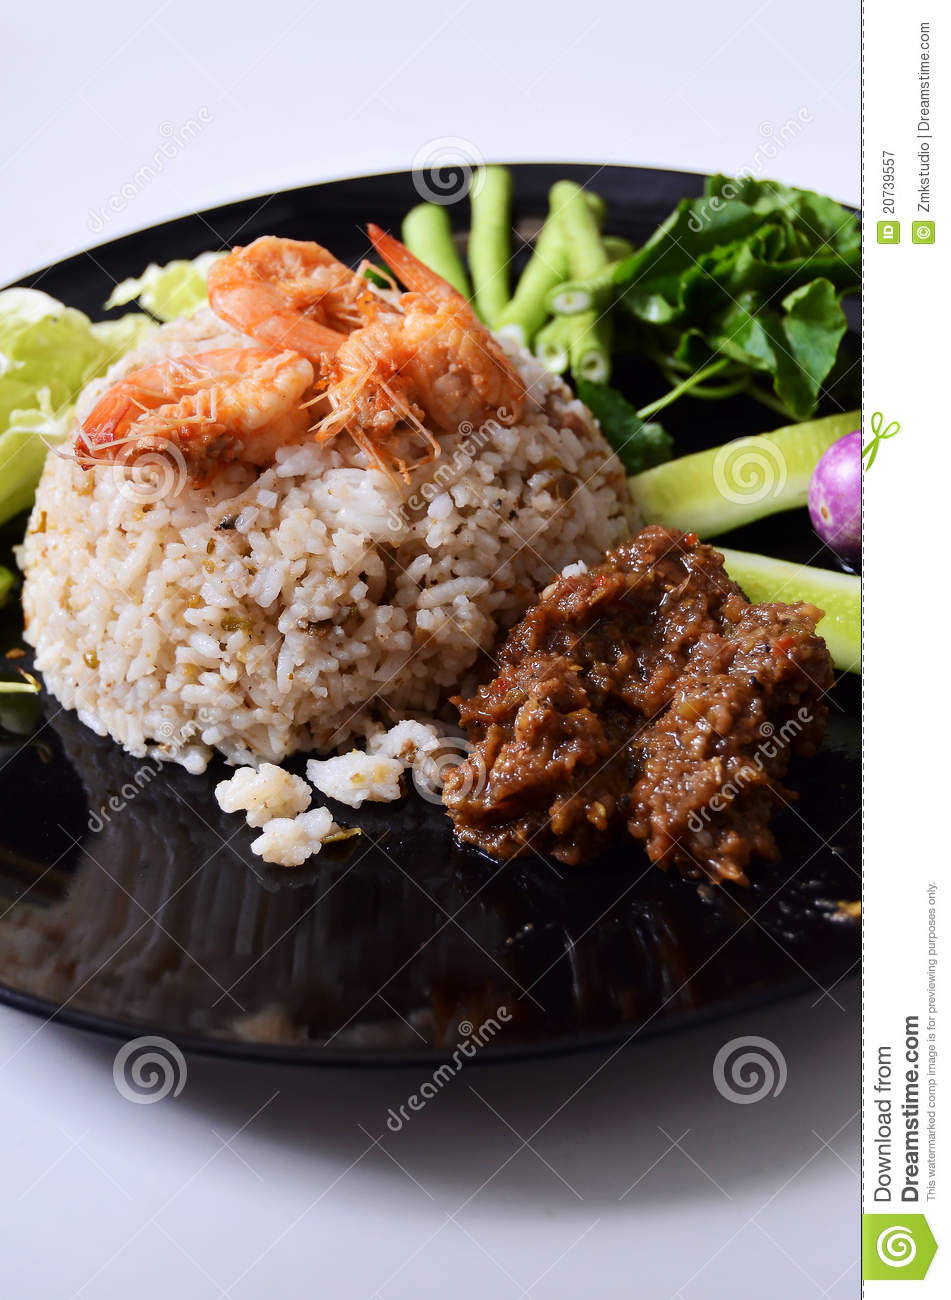 Spicy Fried Rice With Shrimp Royalty Free Stock Photography - Image ...